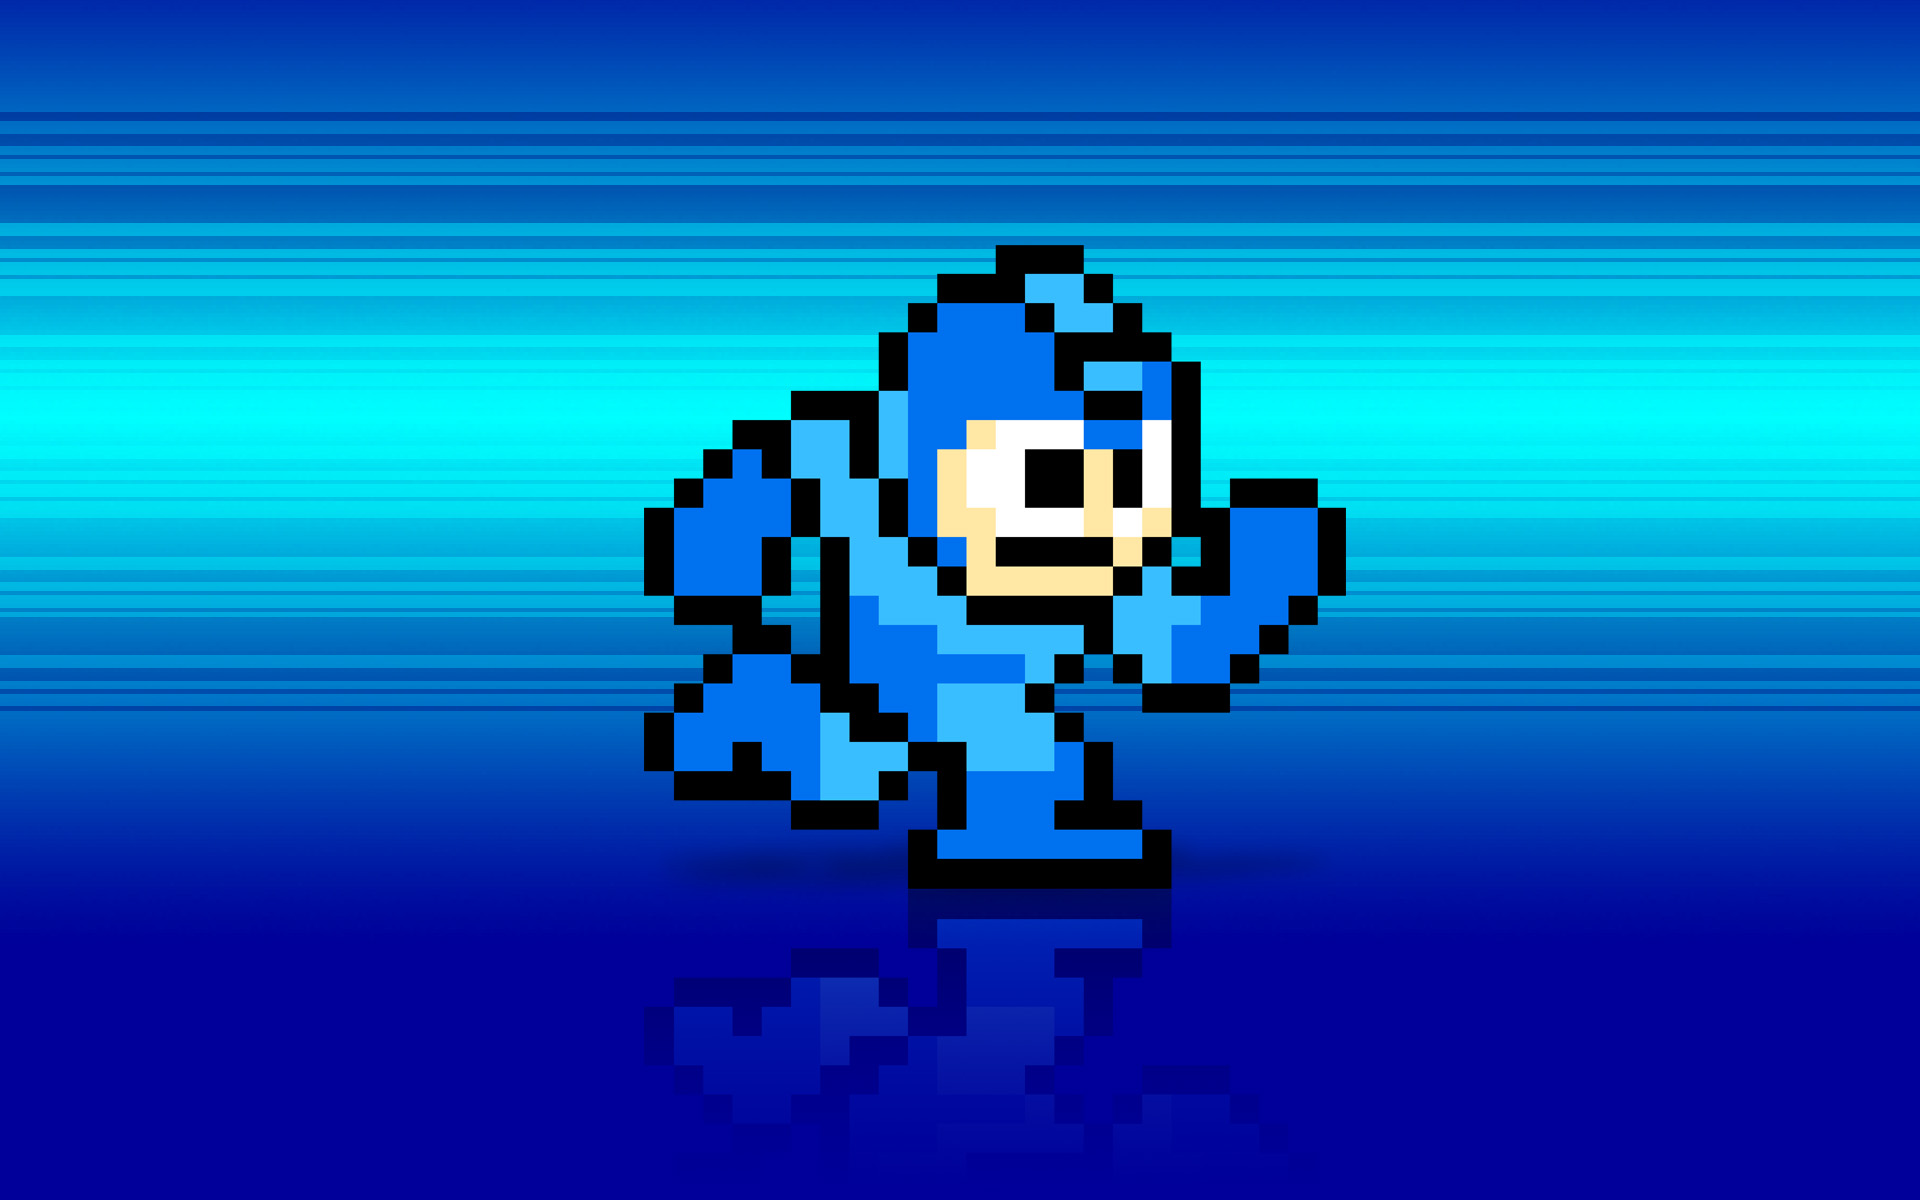 mega man iphone wallpaper wallpapersafari